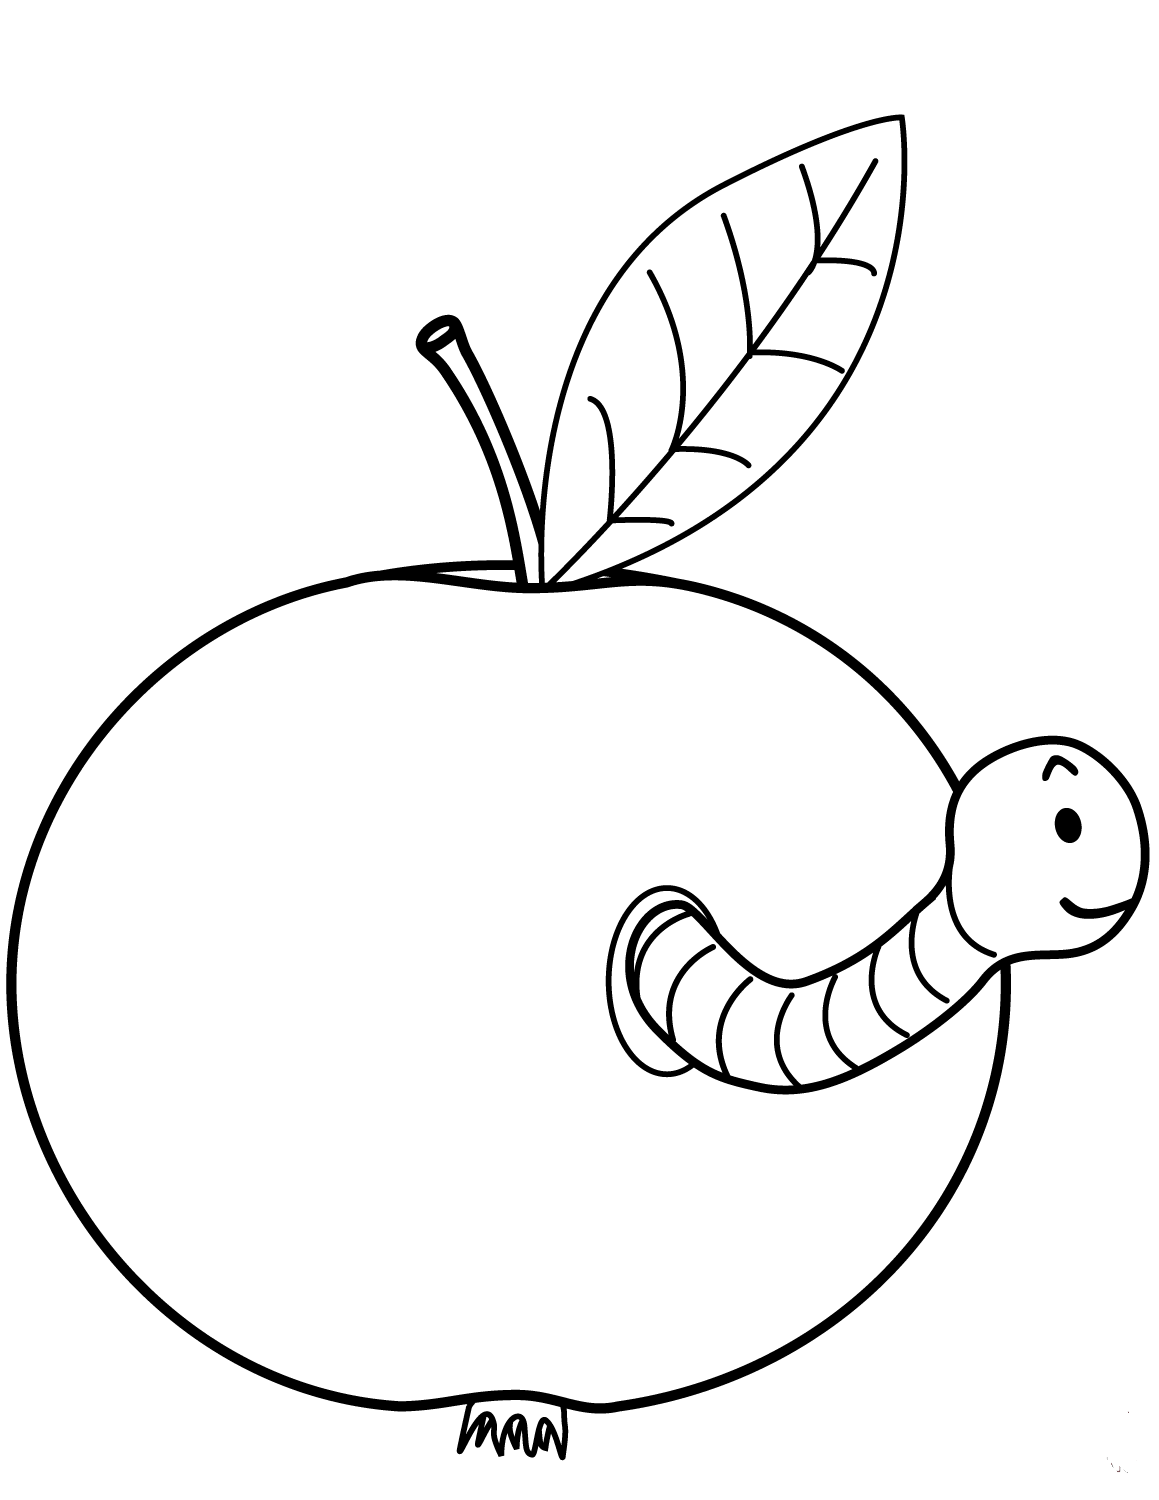 Worm Coming Out Of Apple